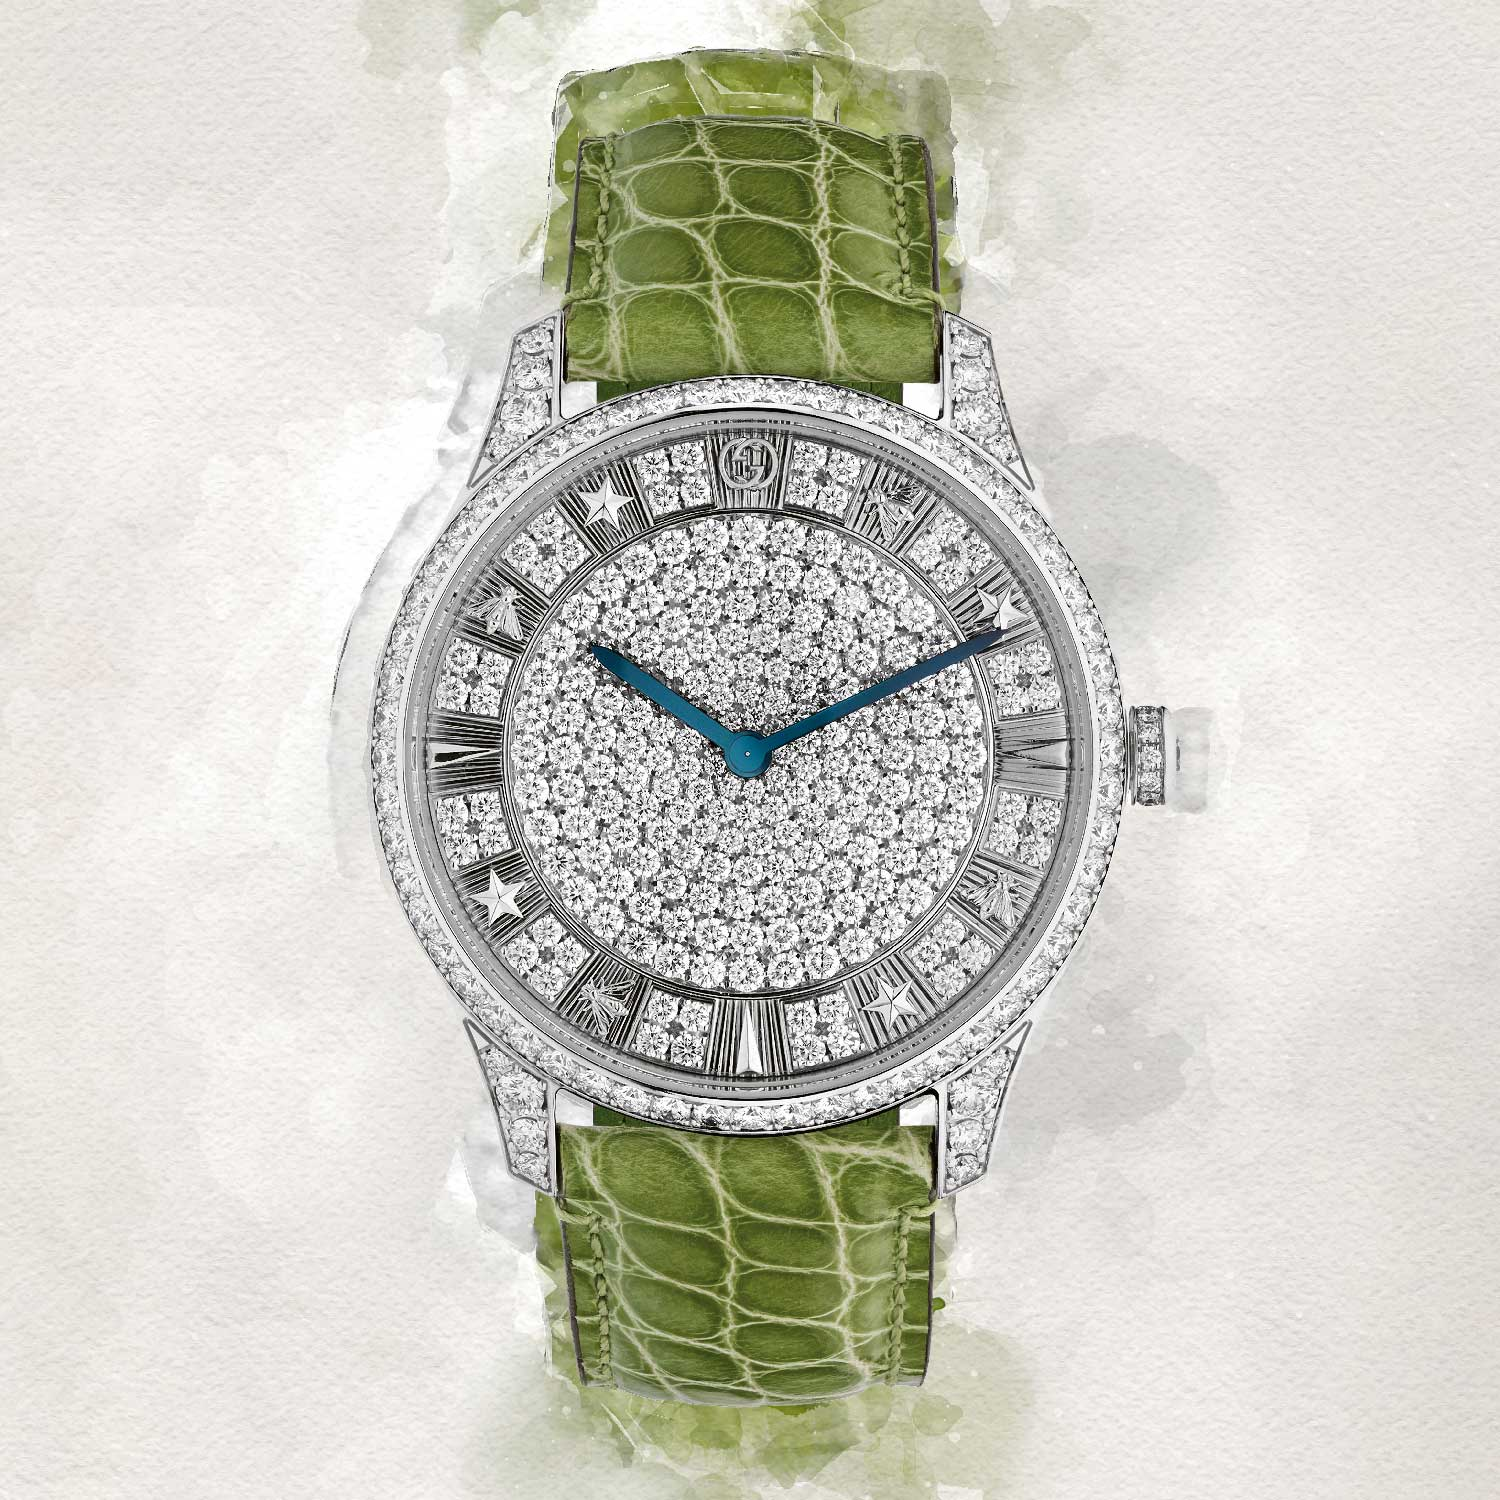 G-Timeless Pavé encrusted with white diamonds , creating a dazzling display of monochromatic texture